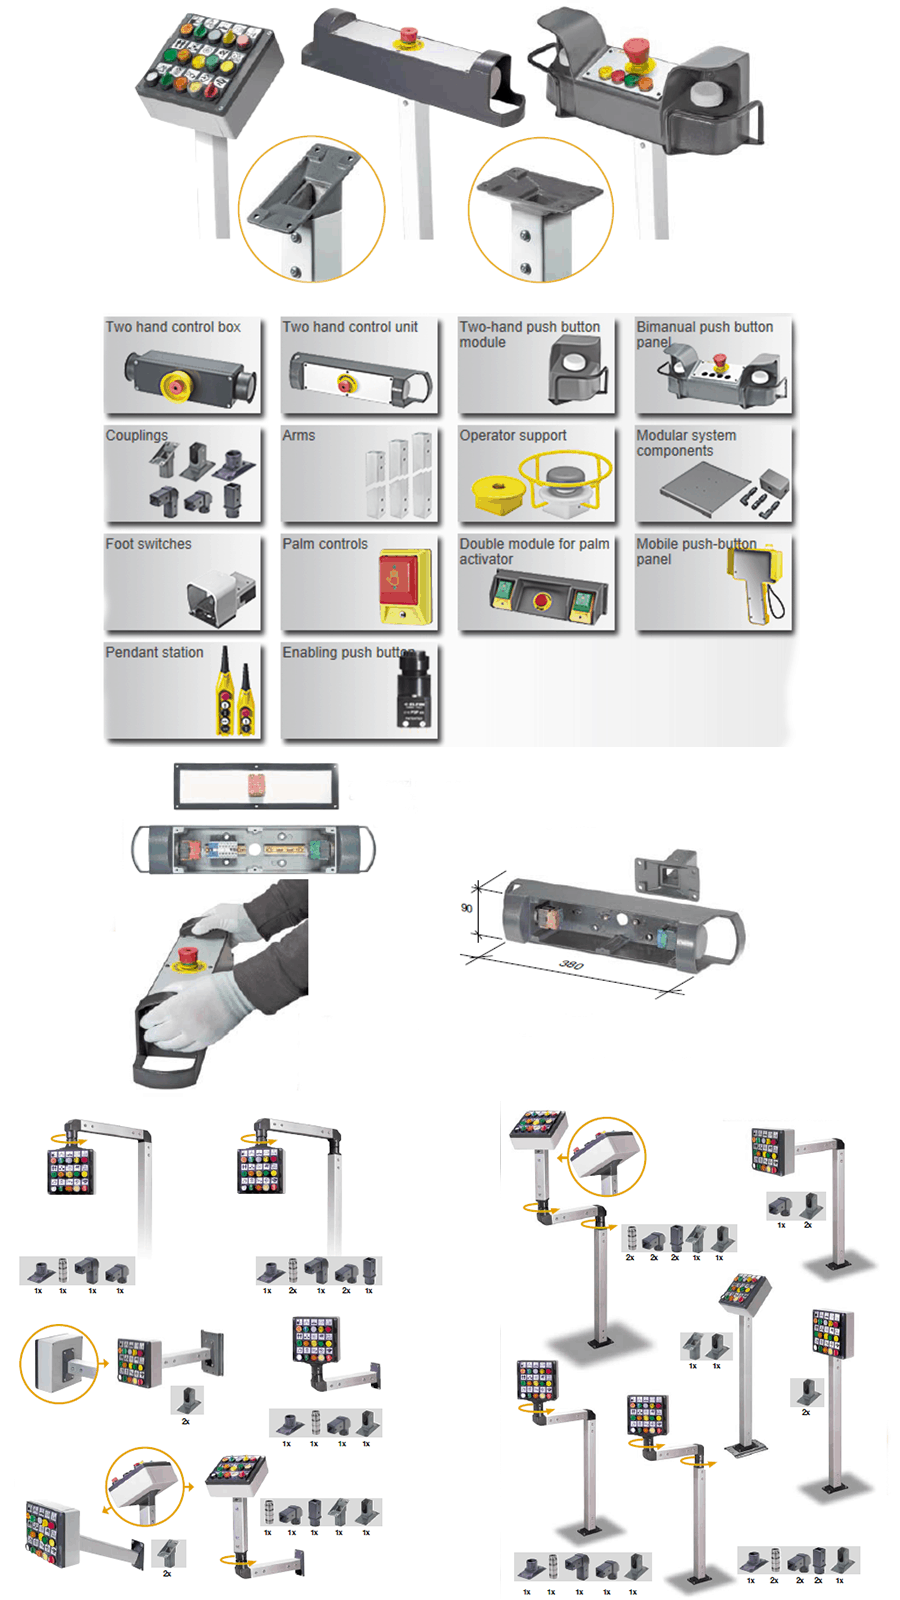 Industrial Control, Safety Control, Pendant Control